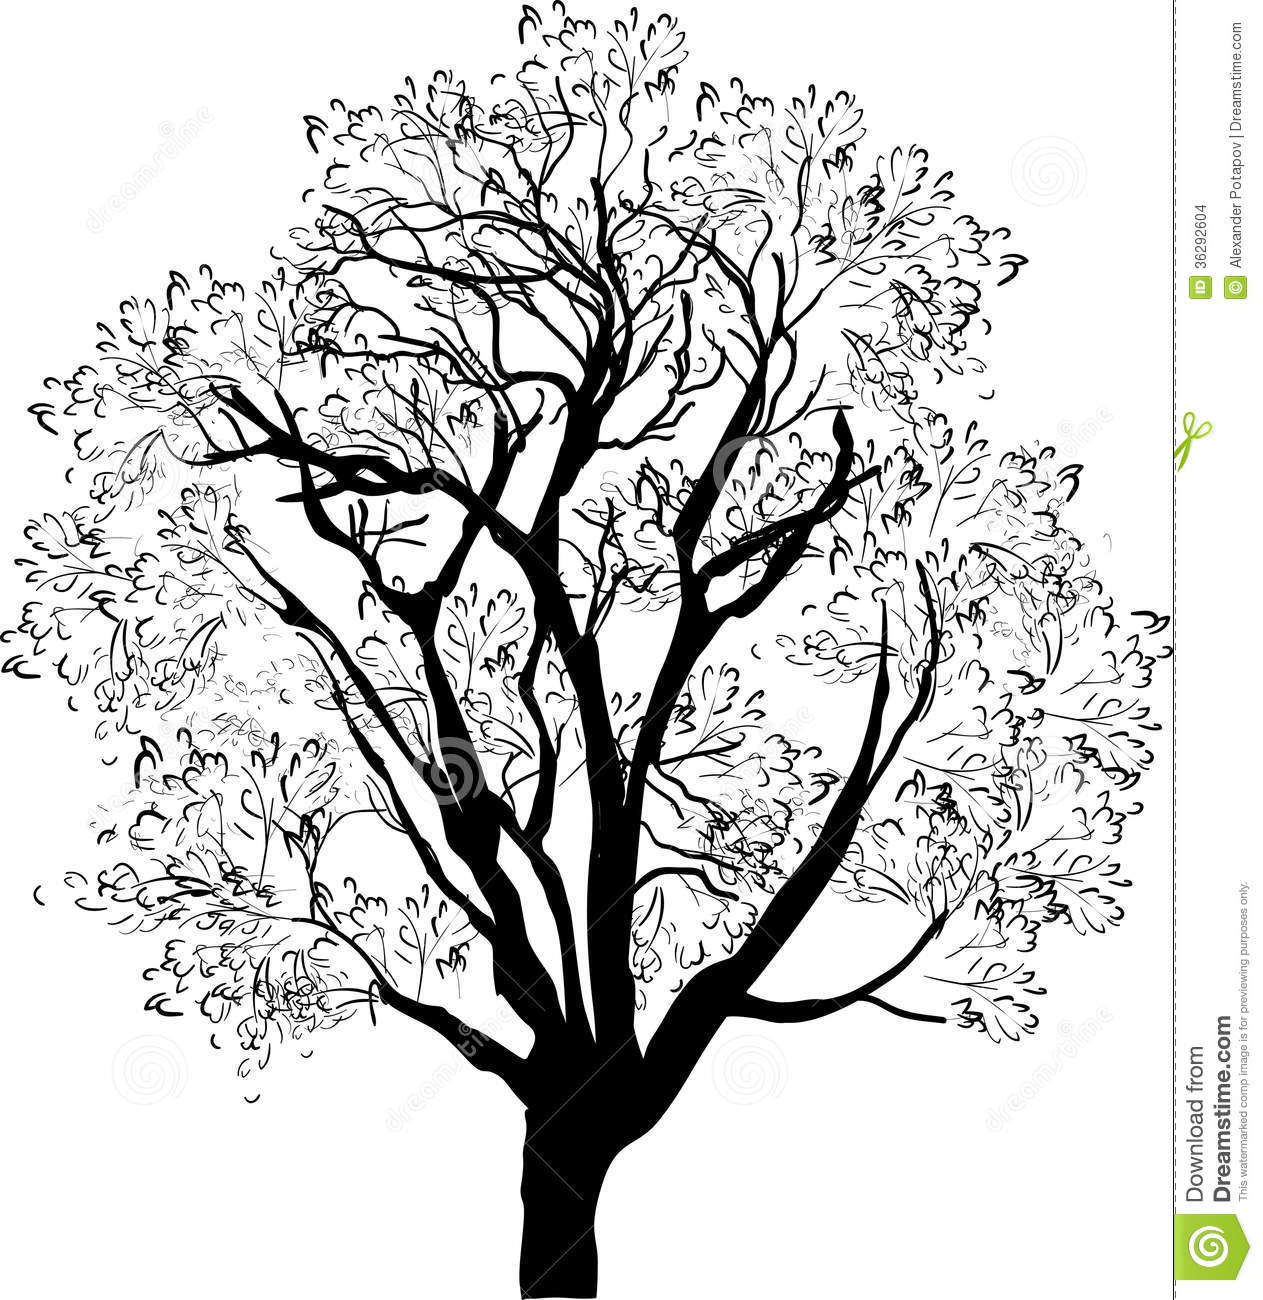 How To Draw Simple Anime in addition Stock Images Tree Black Sketch Isolated White Illustration Background Image36292604 also Stock Illustration Outline Bird Feather Icons Fluffy Weightless Ink Pen Literary Logo Emblem Design Isolated White Background Image48614117 furthermore Stock Image Cartoon Business People Black White Vector Illustation Some Hand Drawn Image32179661 also All Disney Princess Coloring Pages 1052. on circle people drawing easy